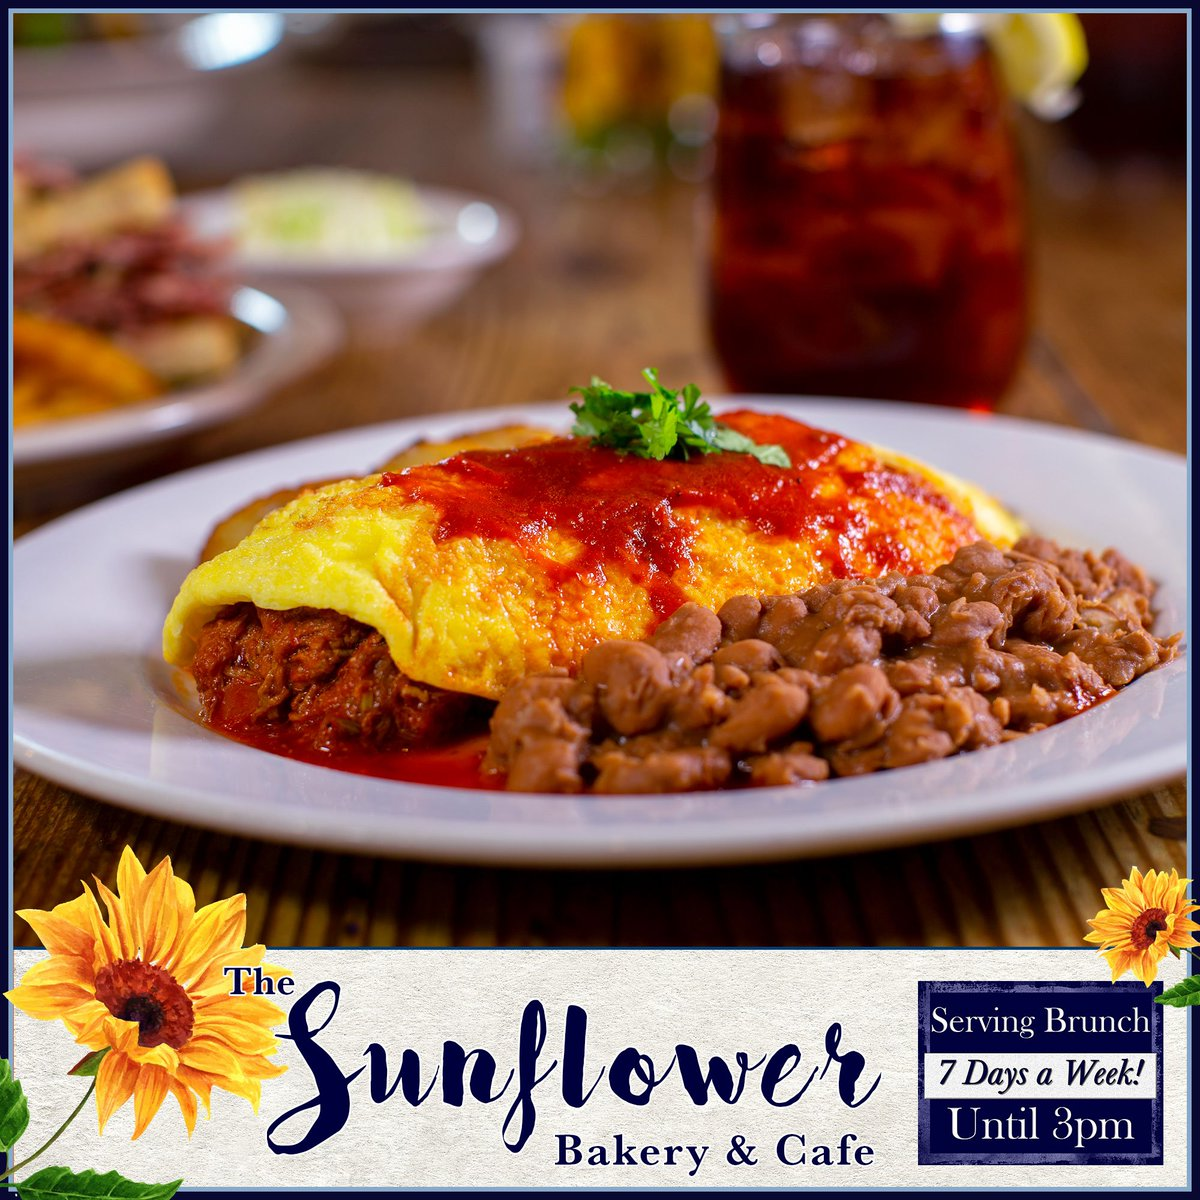 It's Sunday & that means Brunch. Join us at the Sunflower as we serve up your favorite meal of the week.  Directions -> https://t.co/M77xgNl0qk Menu -> https://t.co/tUmYDCXDPW https://t.co/E2UG7c0Yyu